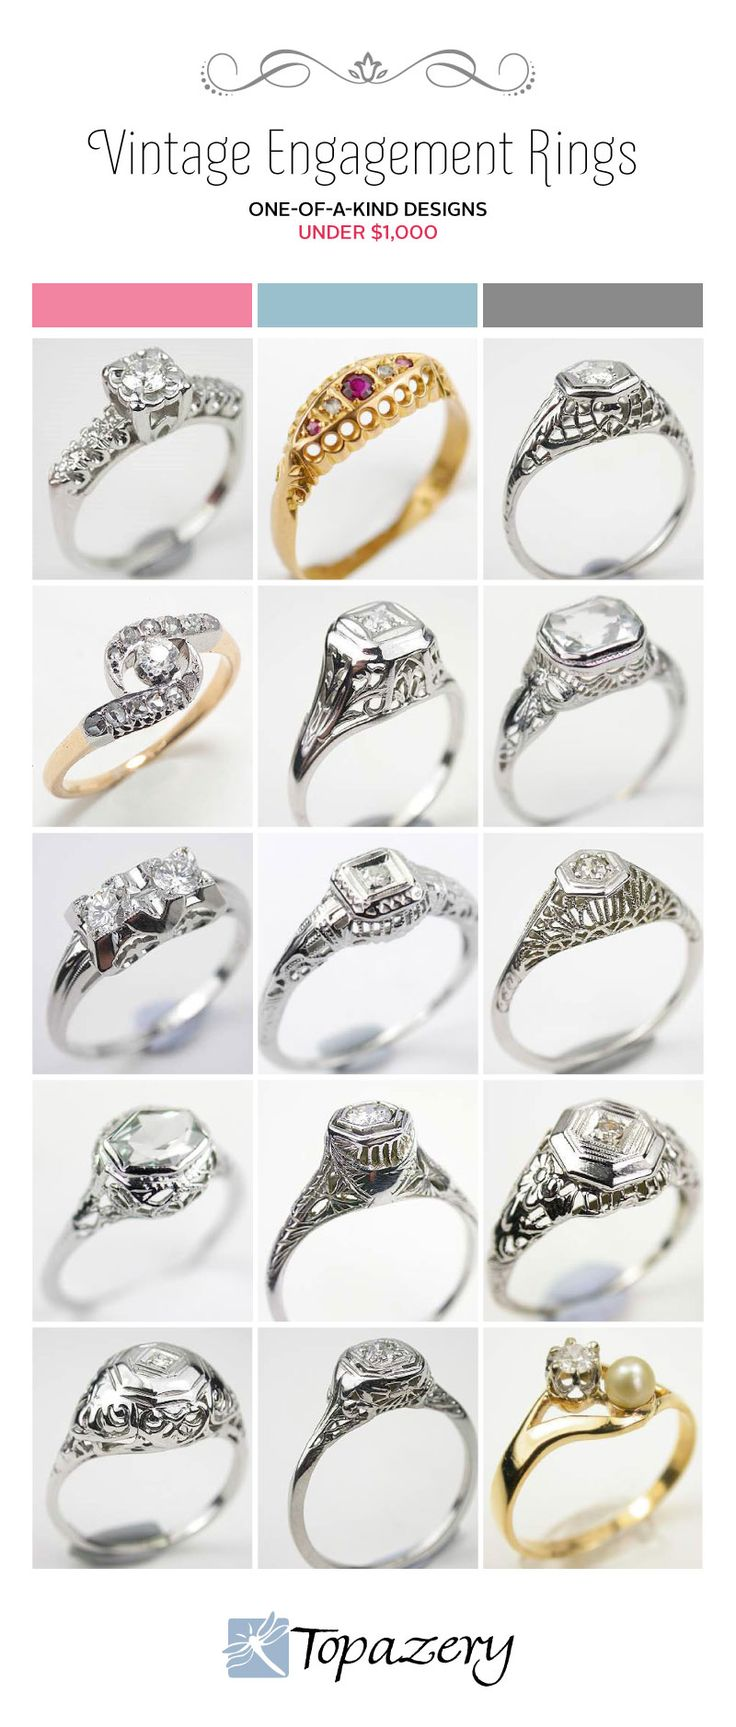 Vintage Engagement Rings on a Budget   Topazery #wedding #Engagement #Rings http://www.topazery.com/antique-jewelry-blog-entry/Vintage-Engagement-Rings-on-a-Budget